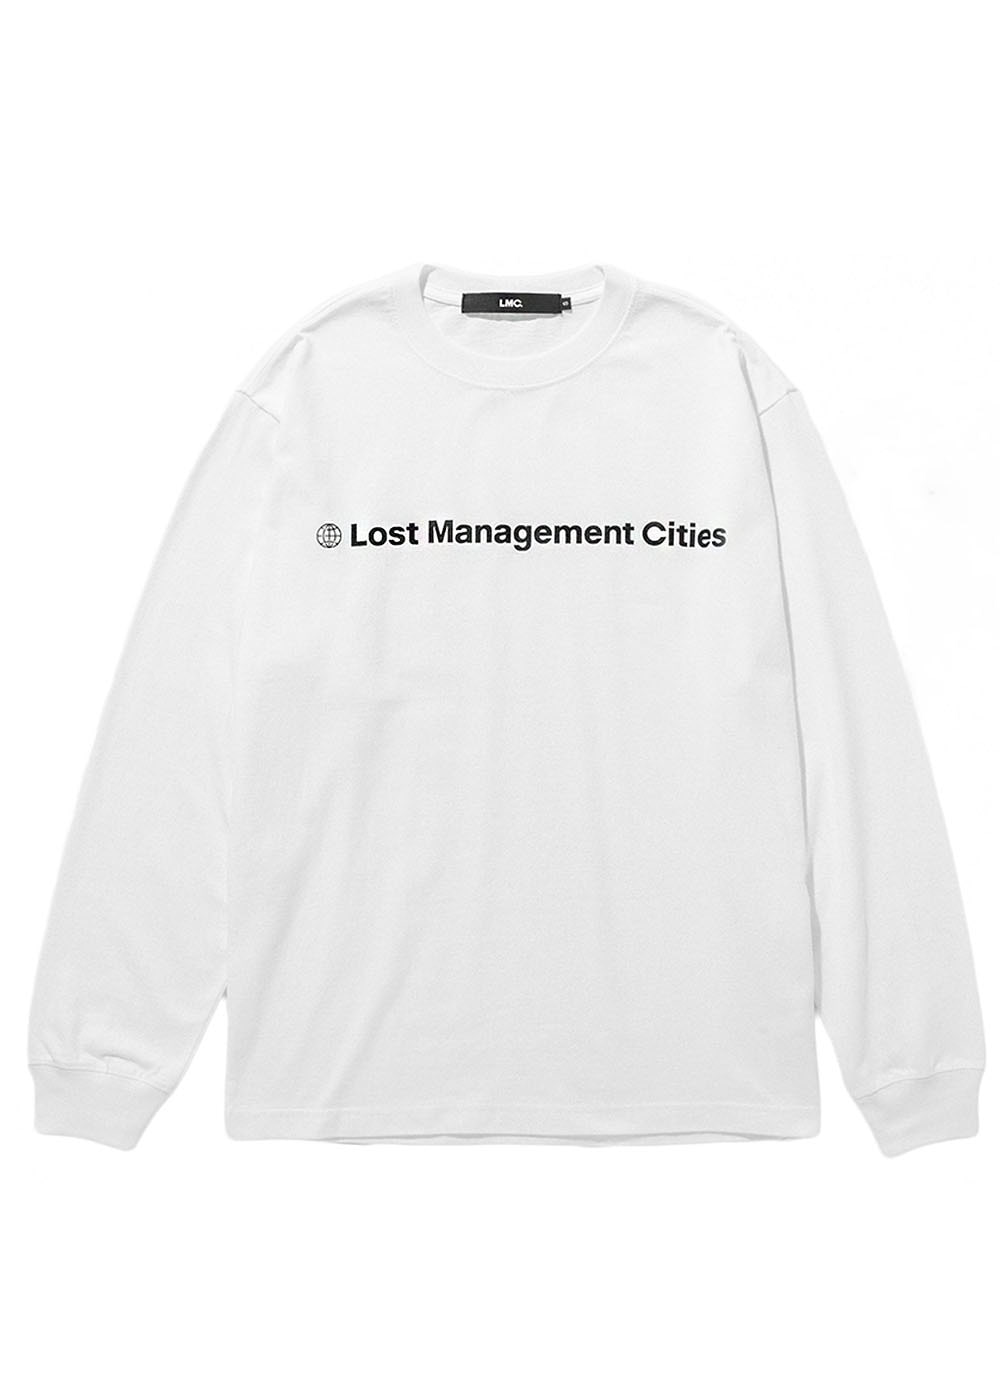 LMC FN OG LONG SLV TEE white